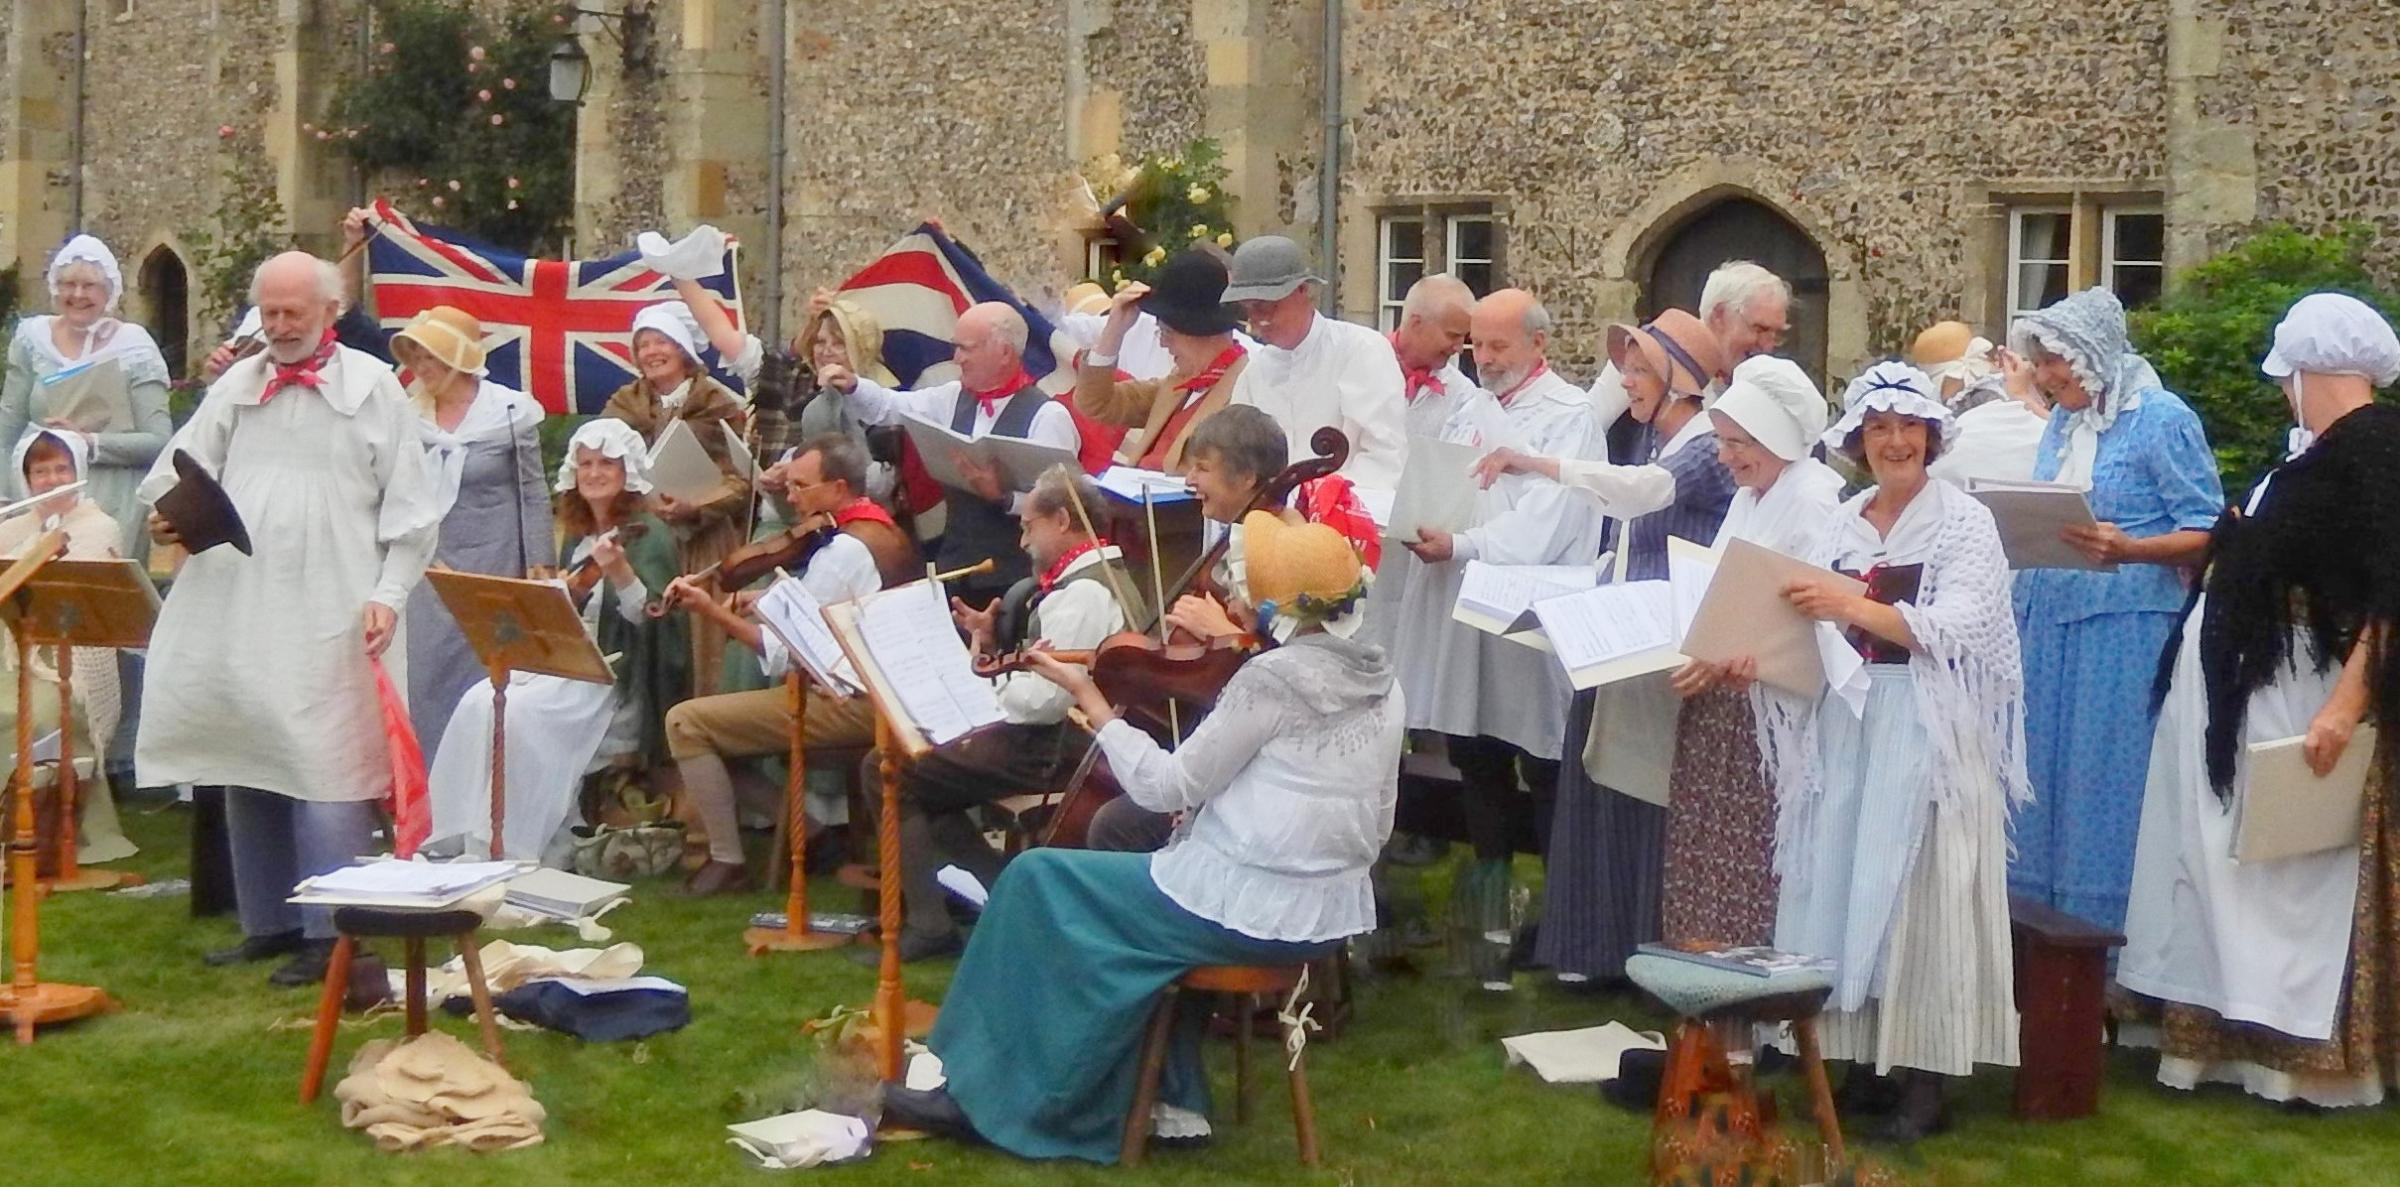 Celebrating Jane Austen 200: An Afternoon of Music, Dance and Song